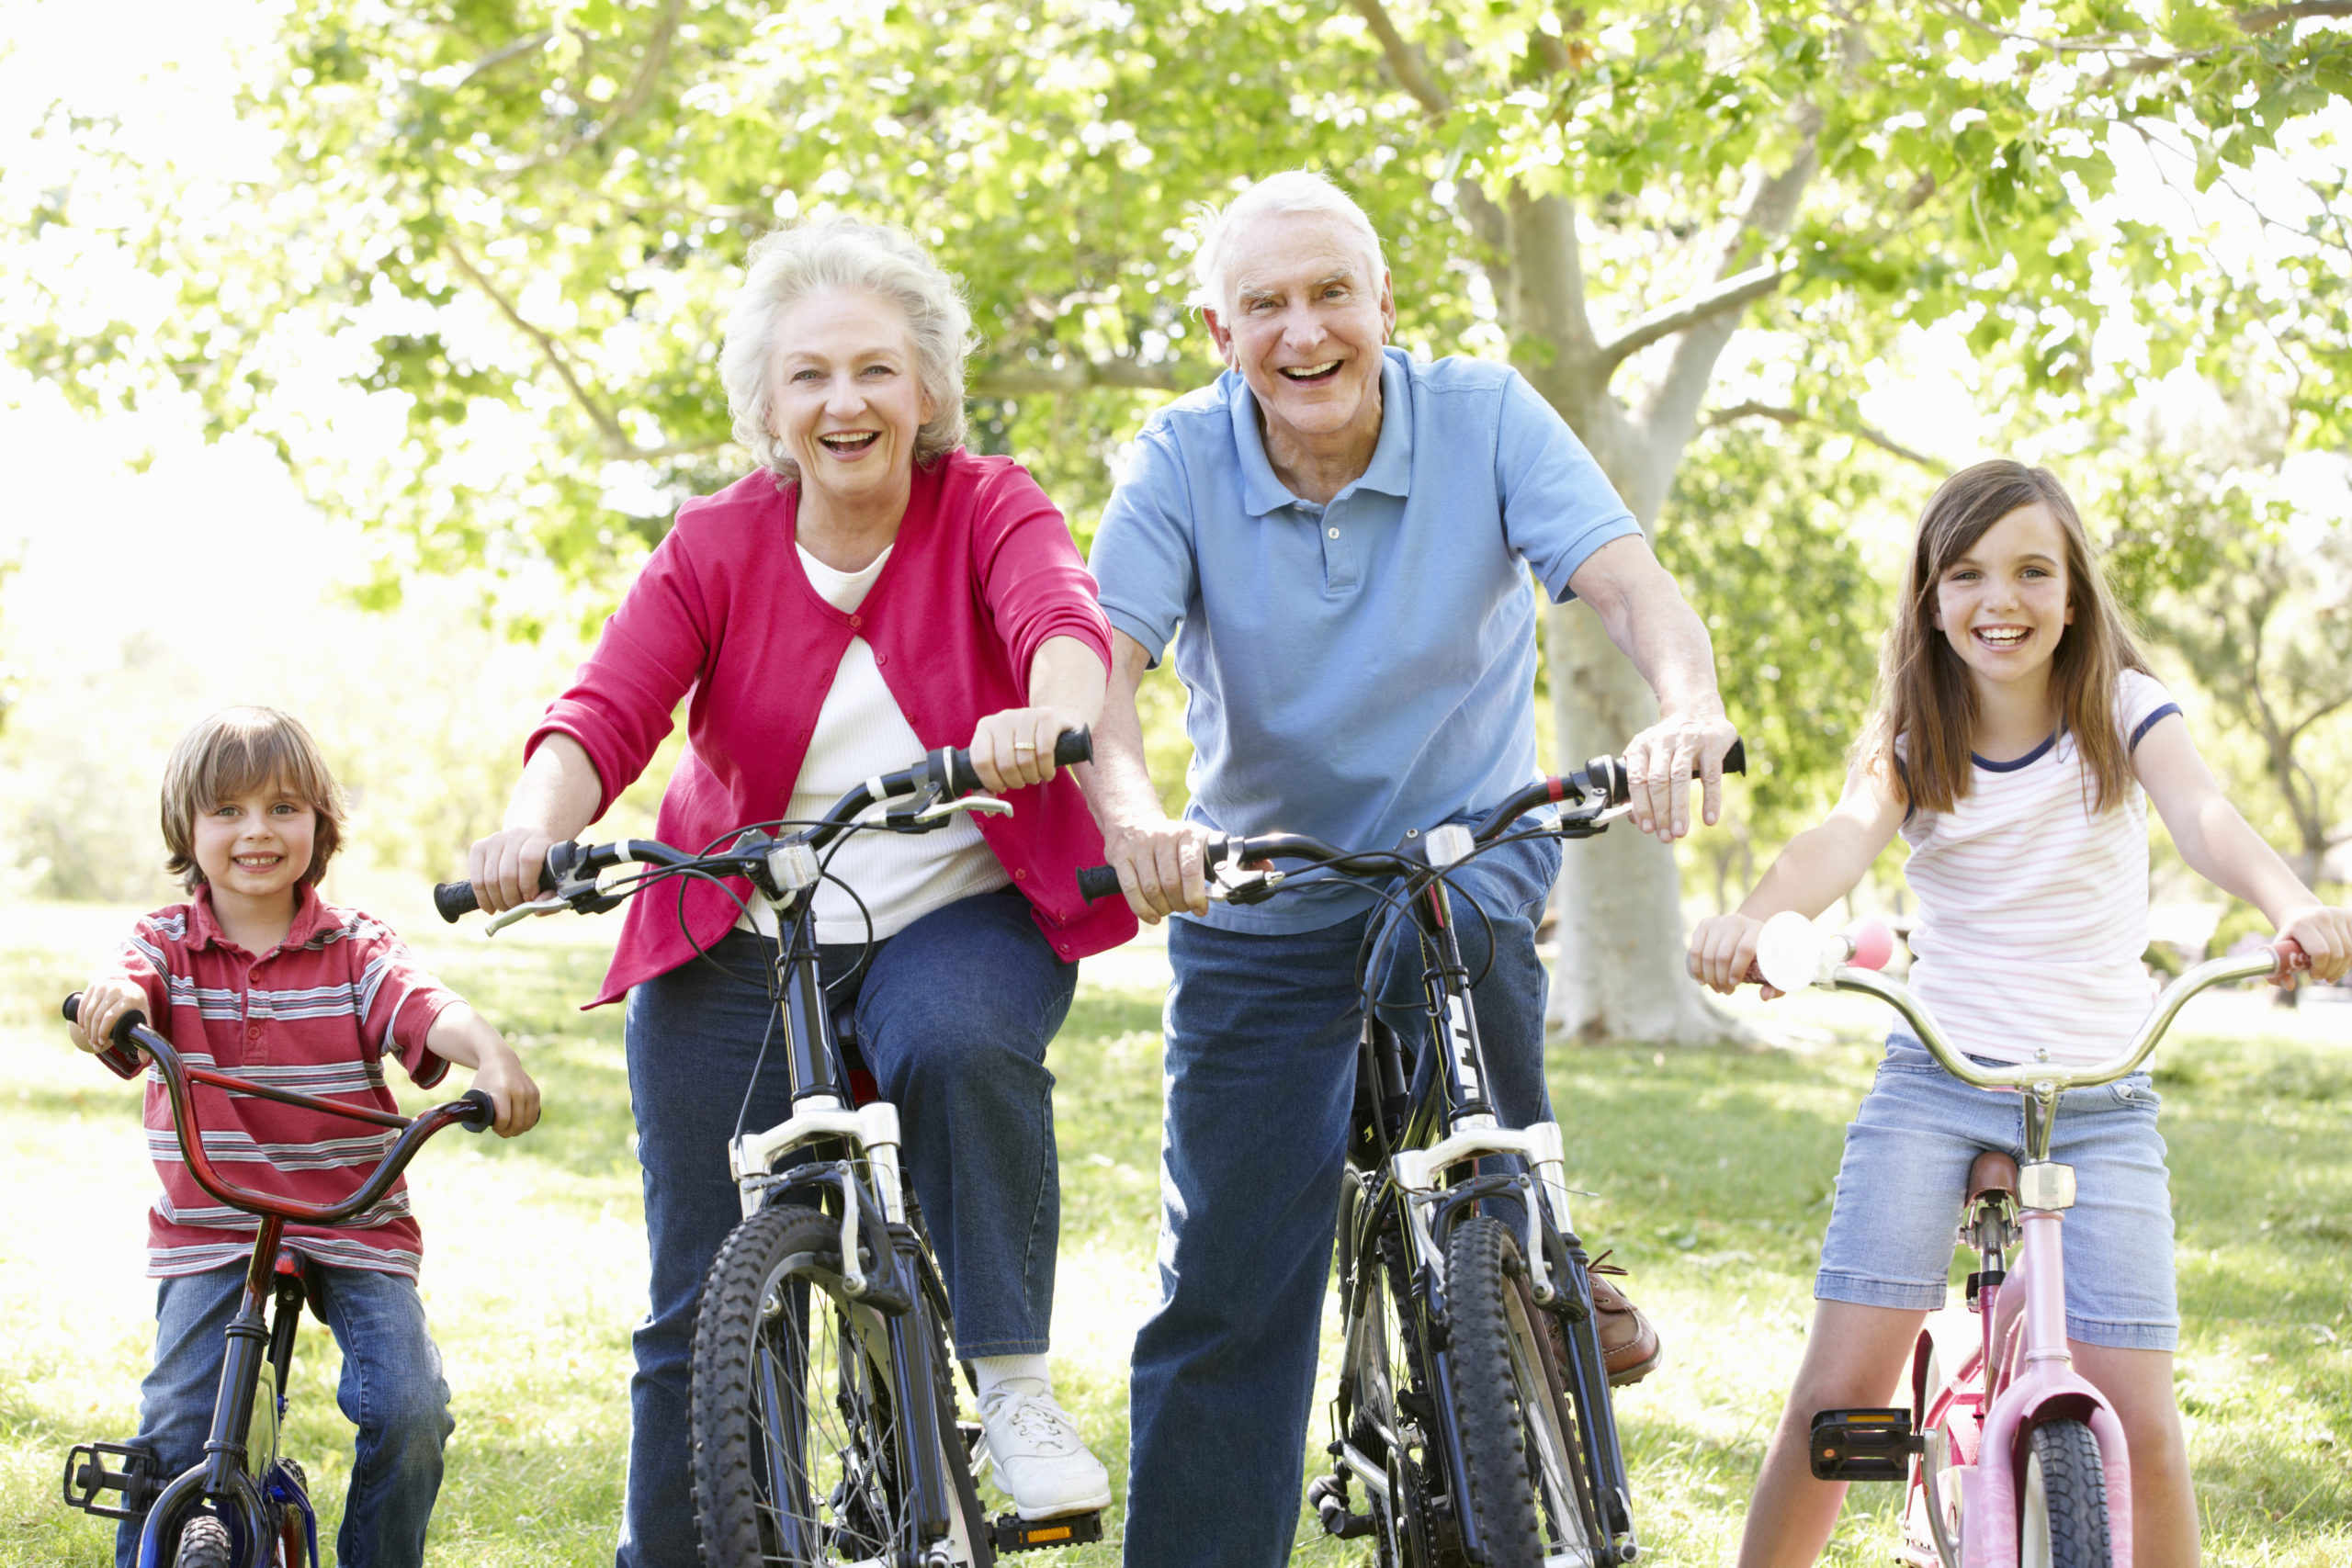 Senior couple with grandchildren on bikes smiling at camera